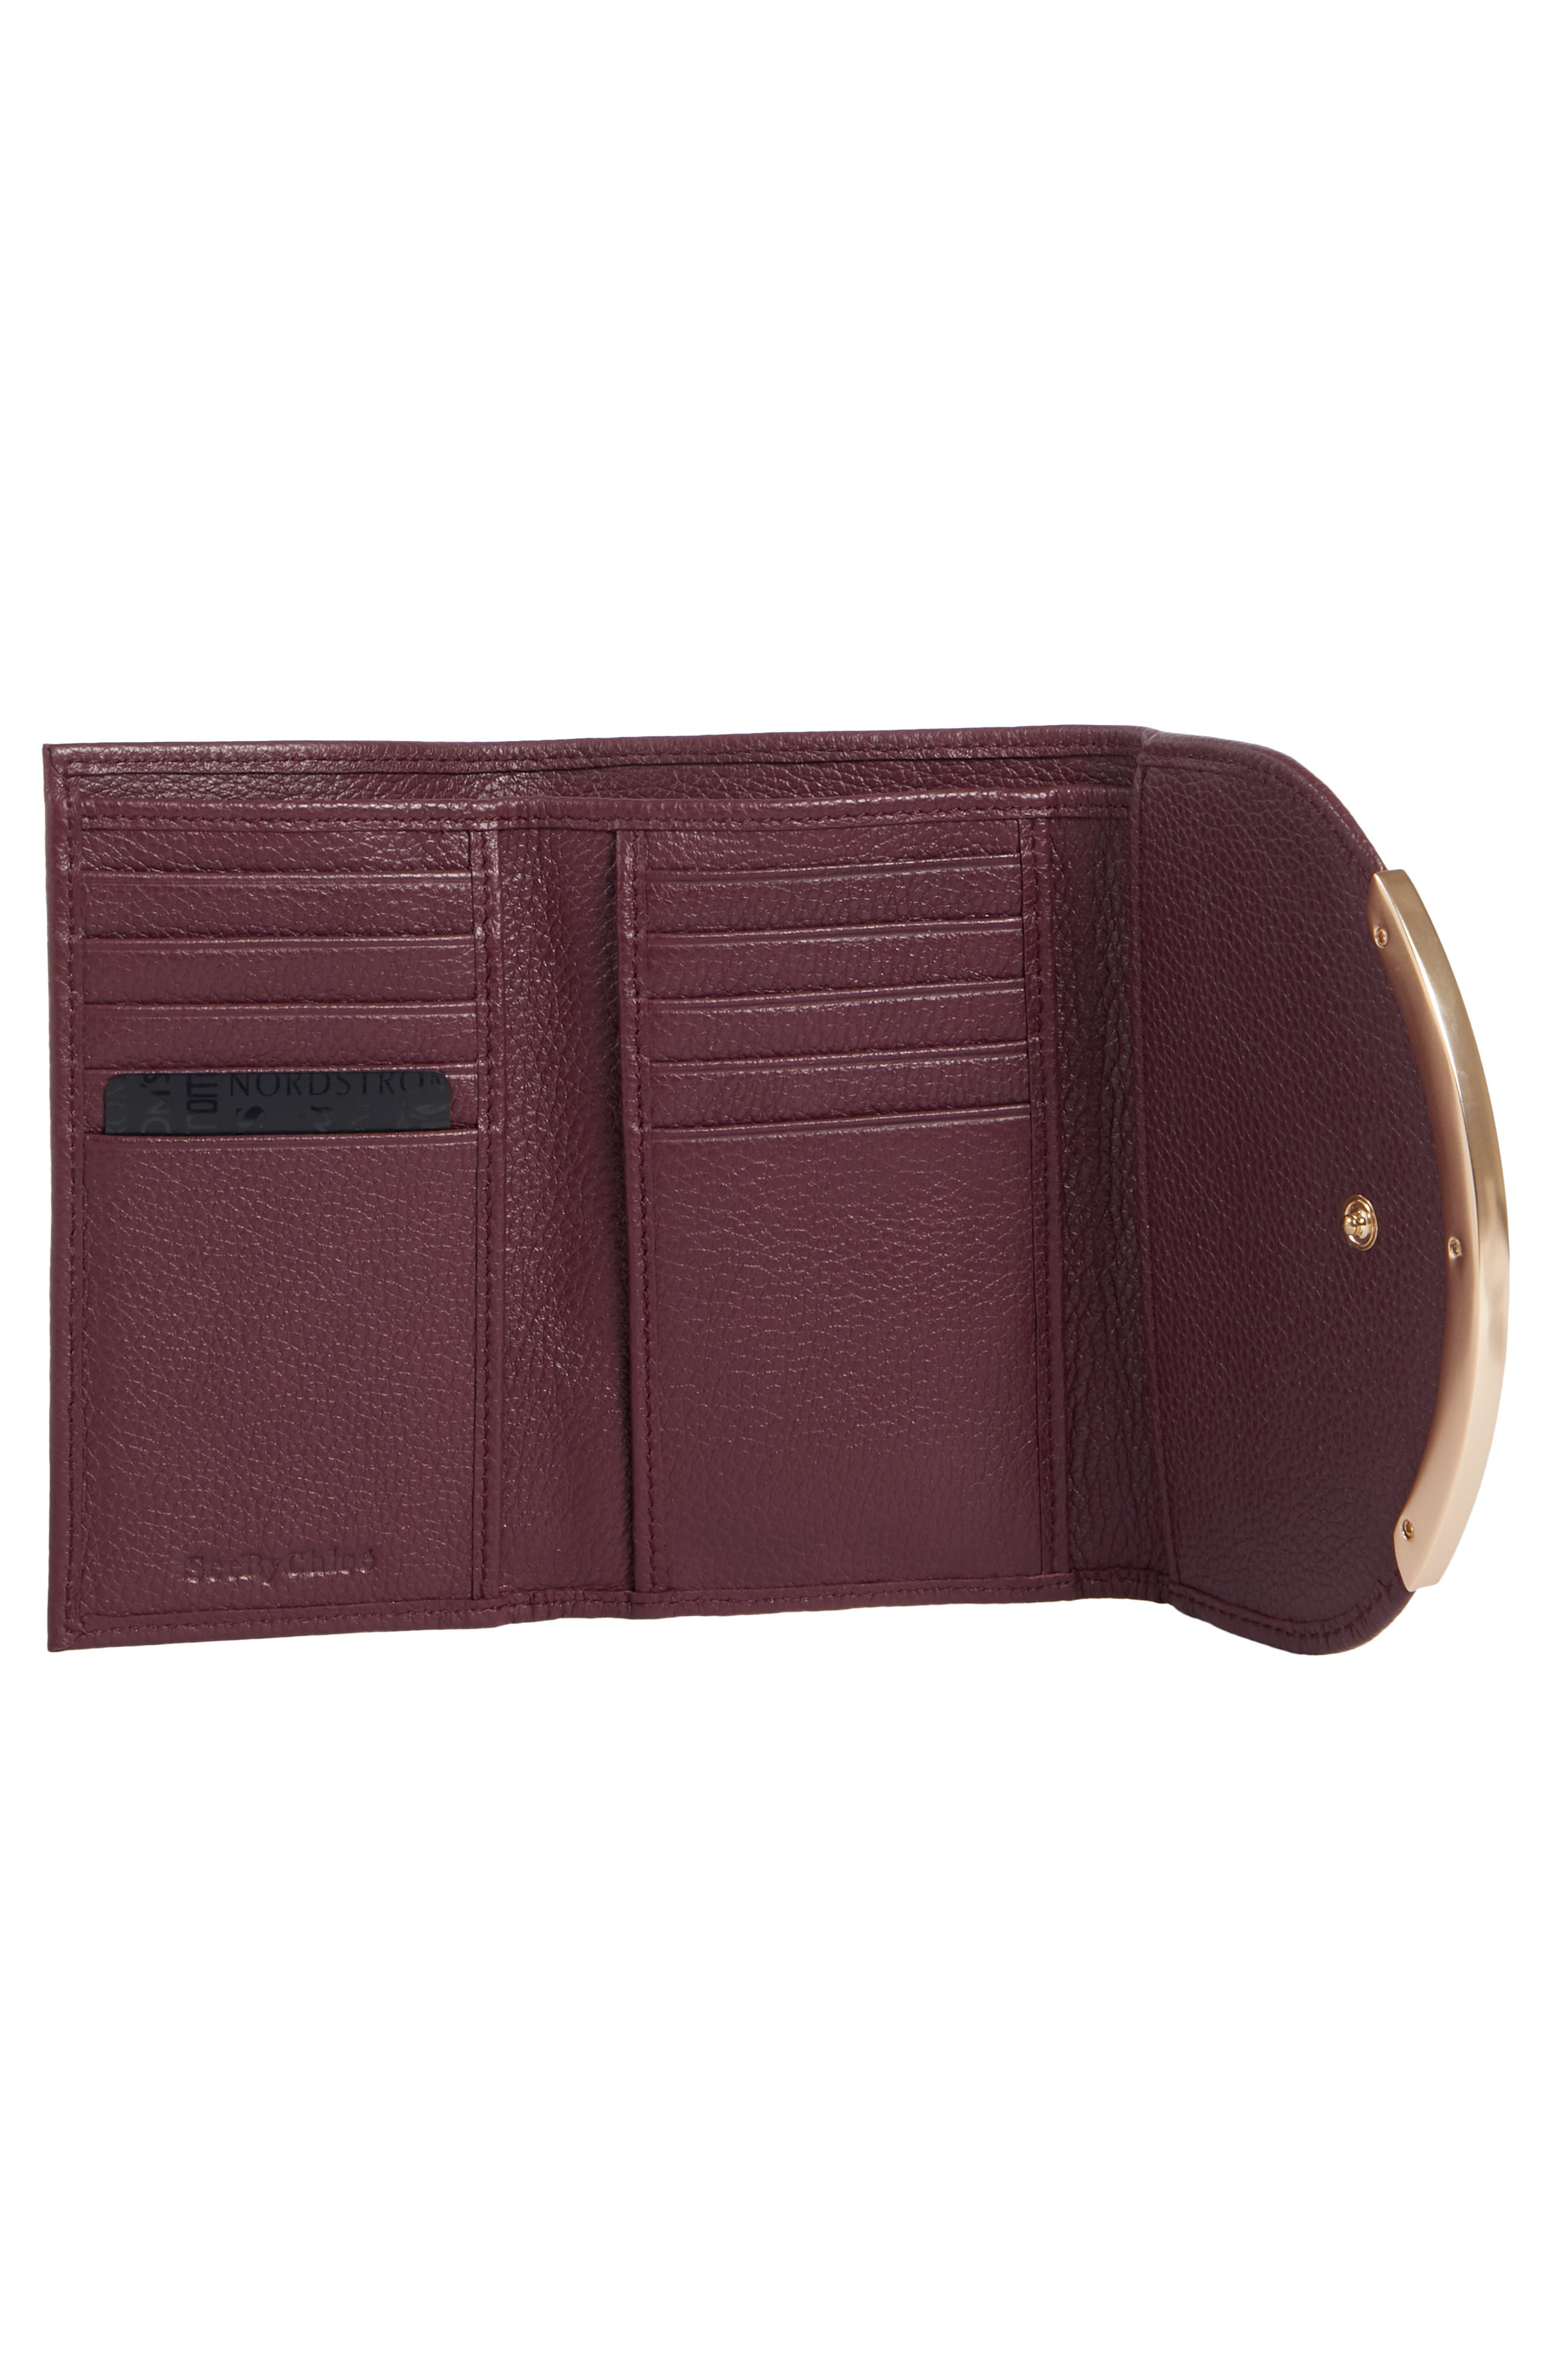 Lizzie Trifold Wallet,                             Alternate thumbnail 3, color,                             501